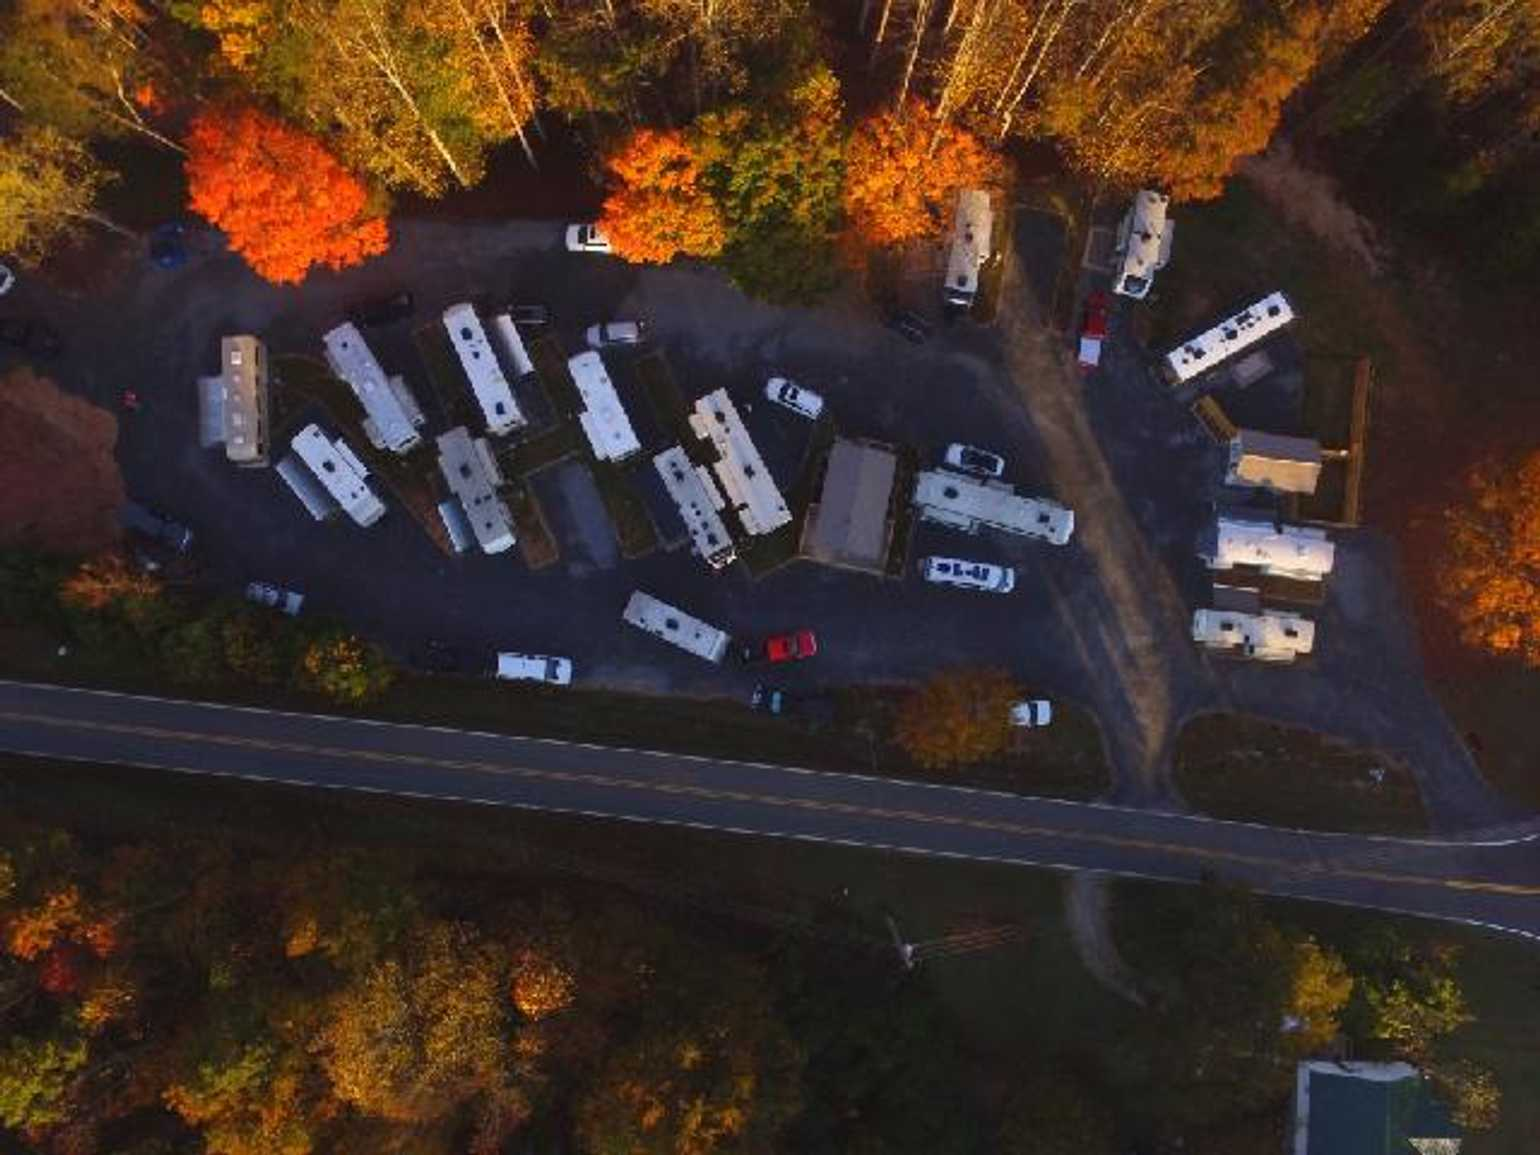 Ariel view of RVs parked at campground during fall